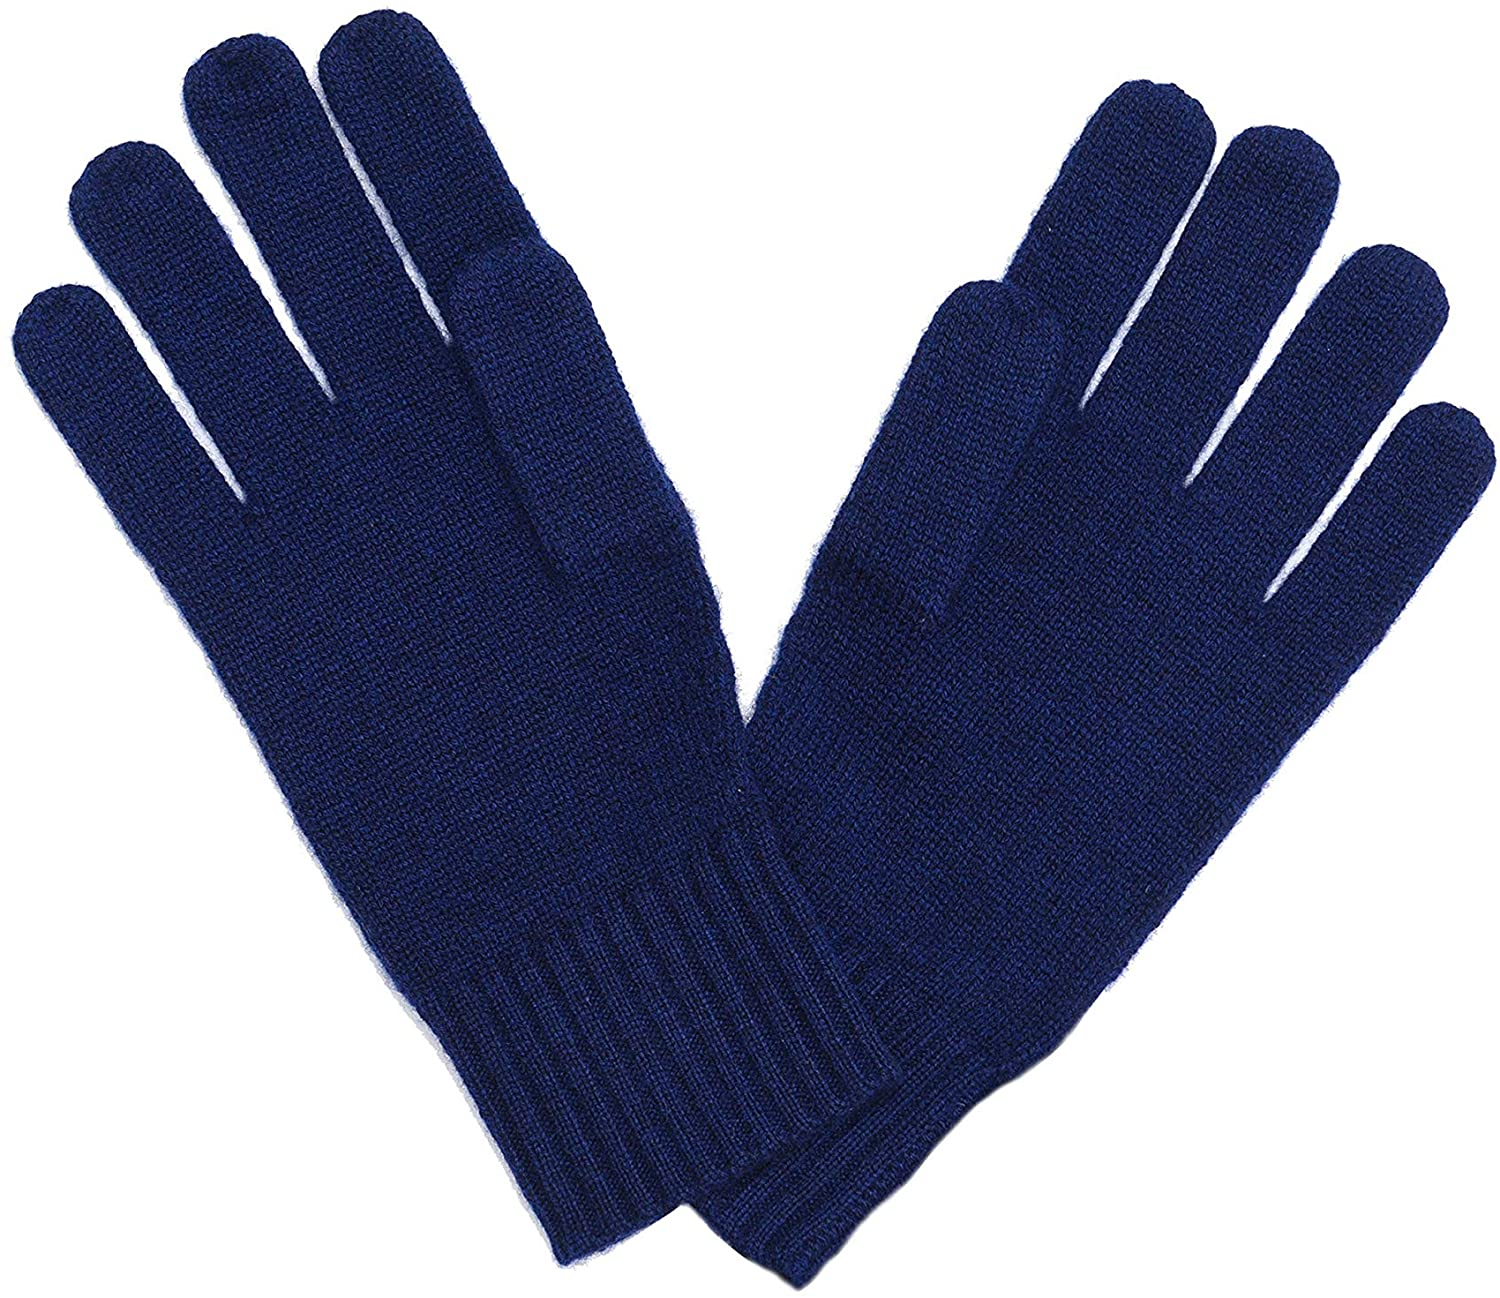 State Cashmere Classic Jersey Knit Gloves in 100% Pure Cashmere with Ribbed Cuffs • Ultimate Protection